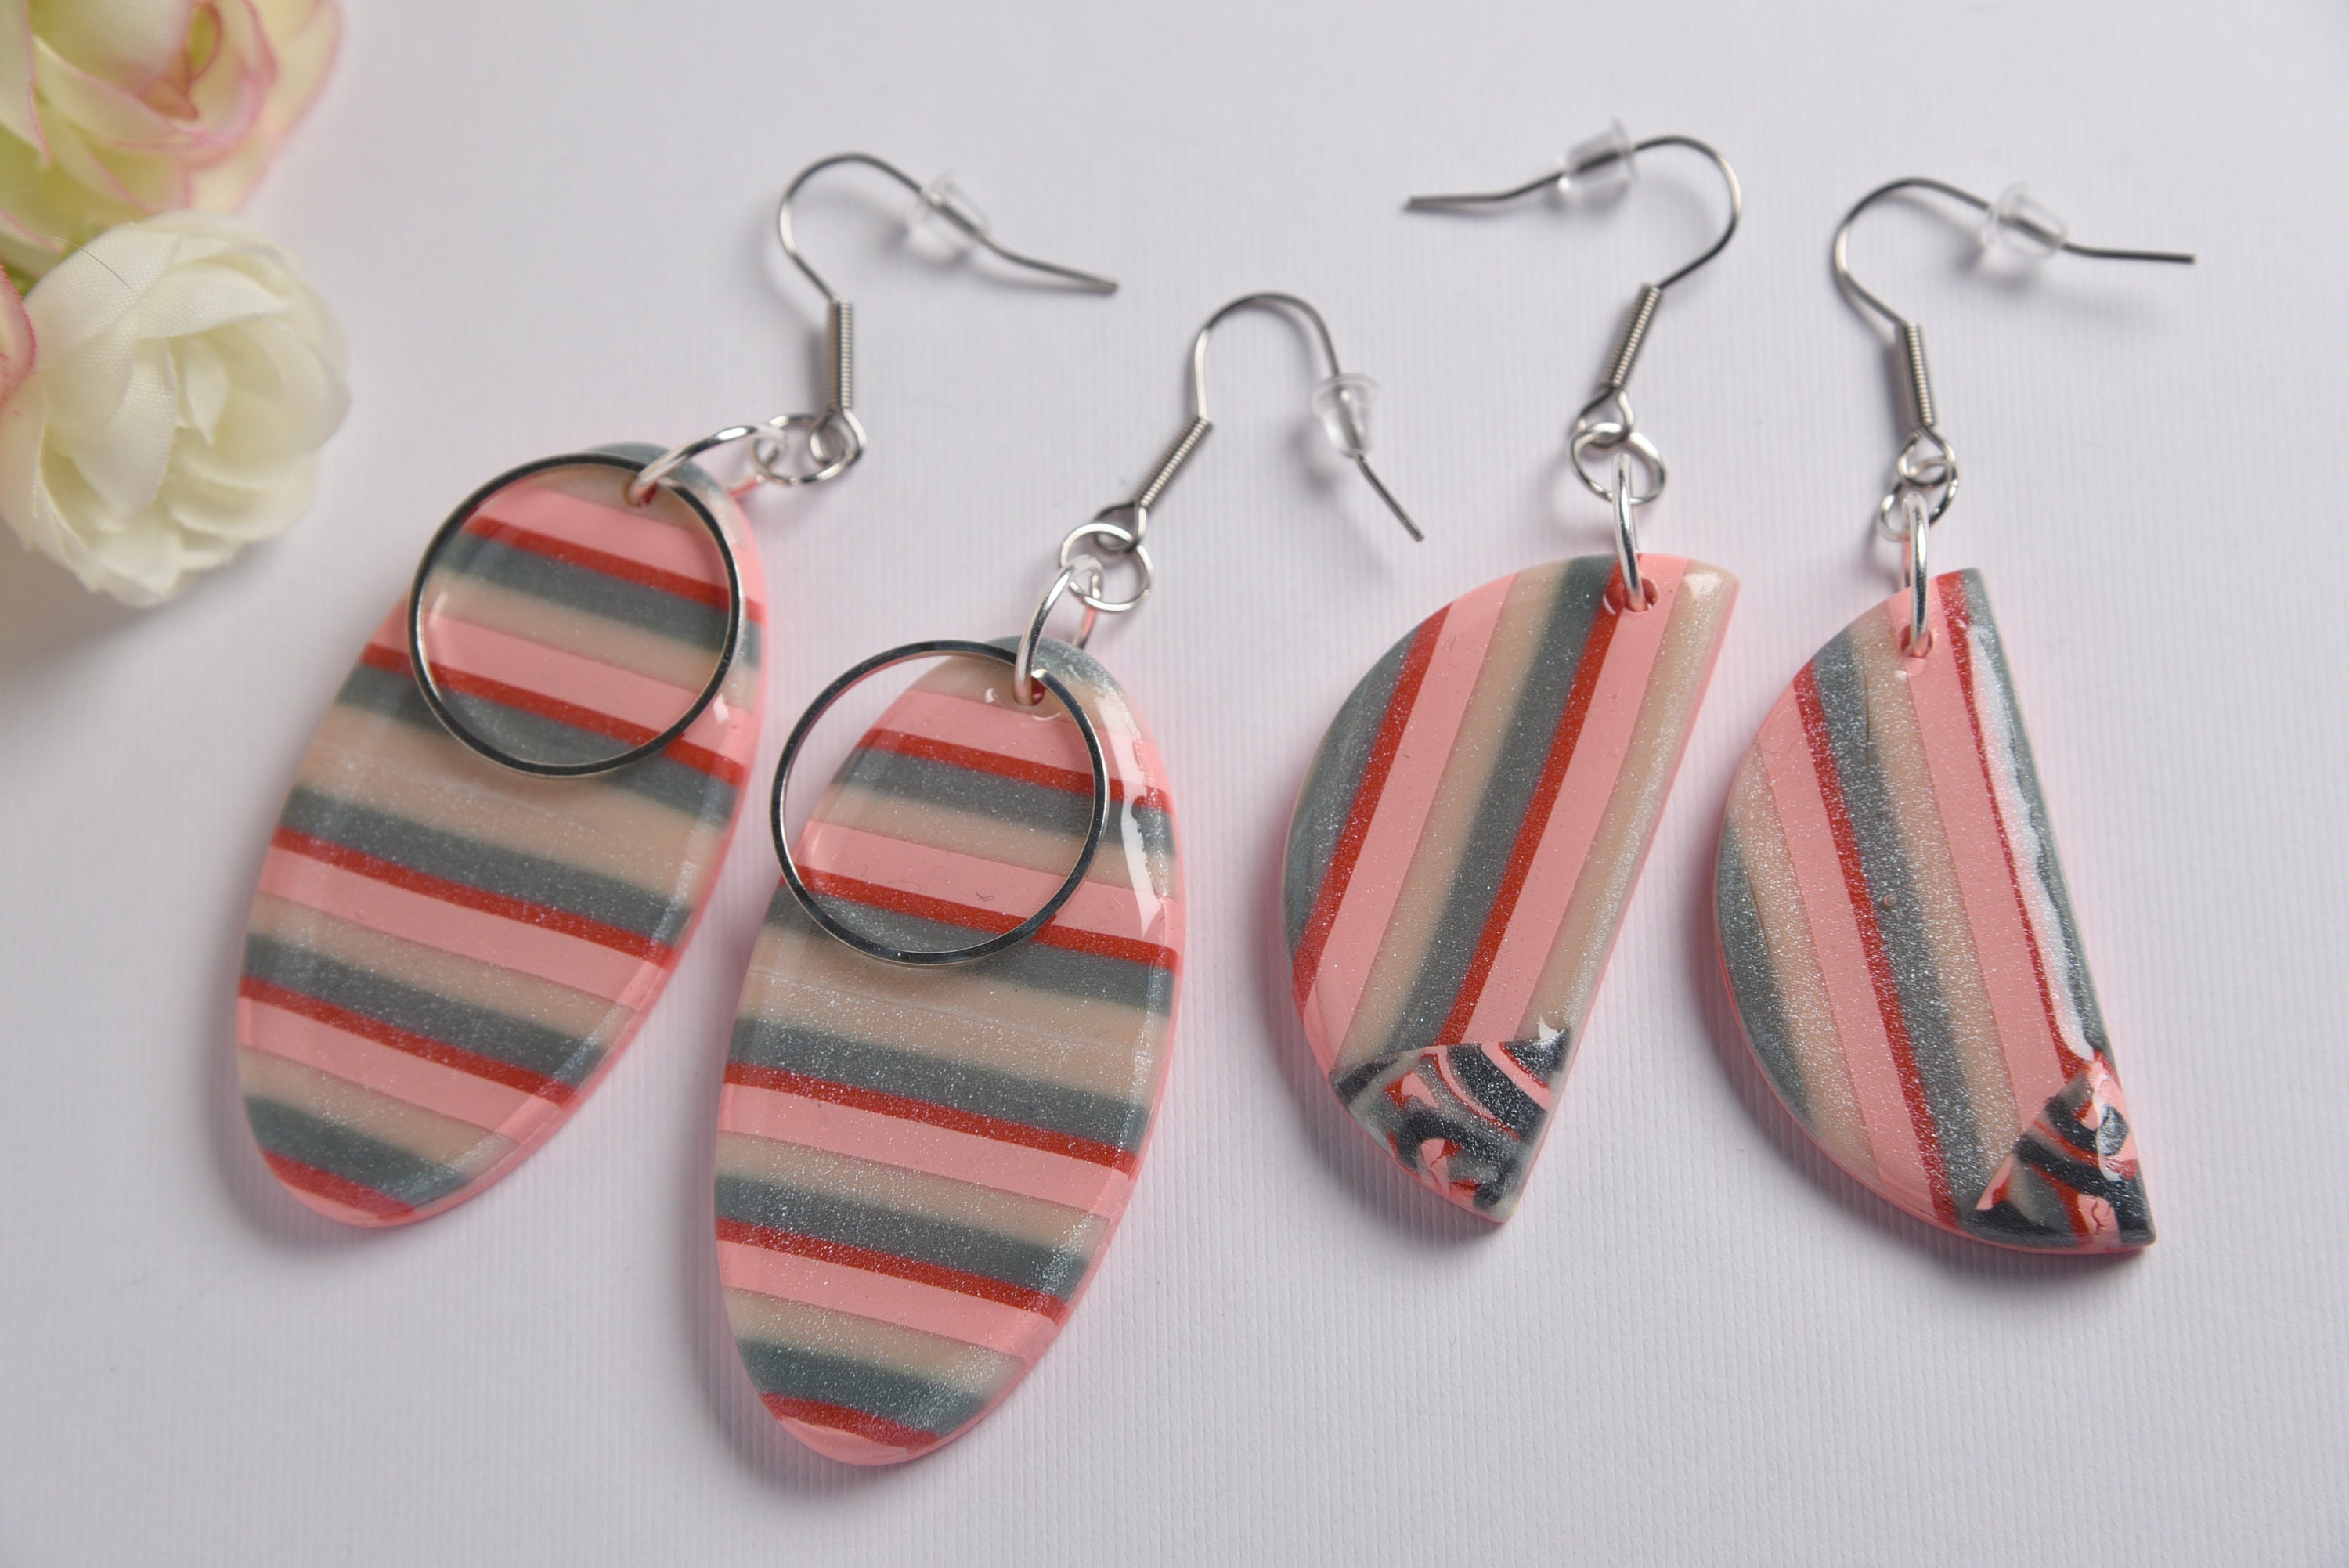 Turquoise Patterned Hoop Dangle Earring Stainless Steel Hypoallergenic Polymer Clay Handmade  